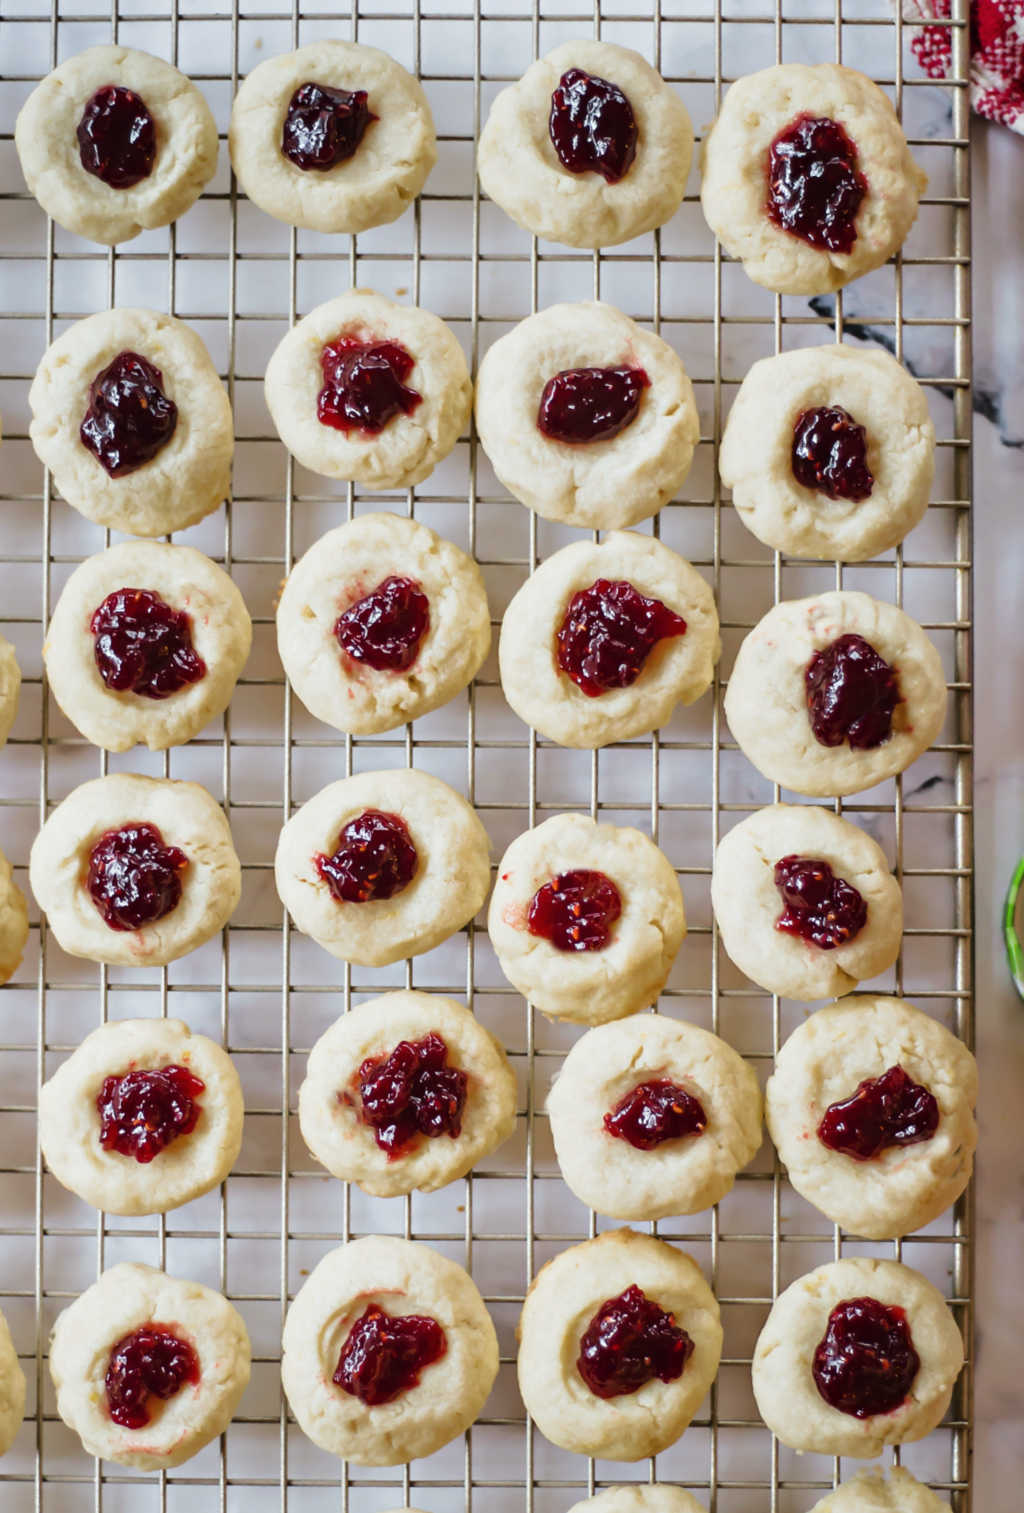 thumbprint cookies filled with raspberry jam on a wire cooling rack